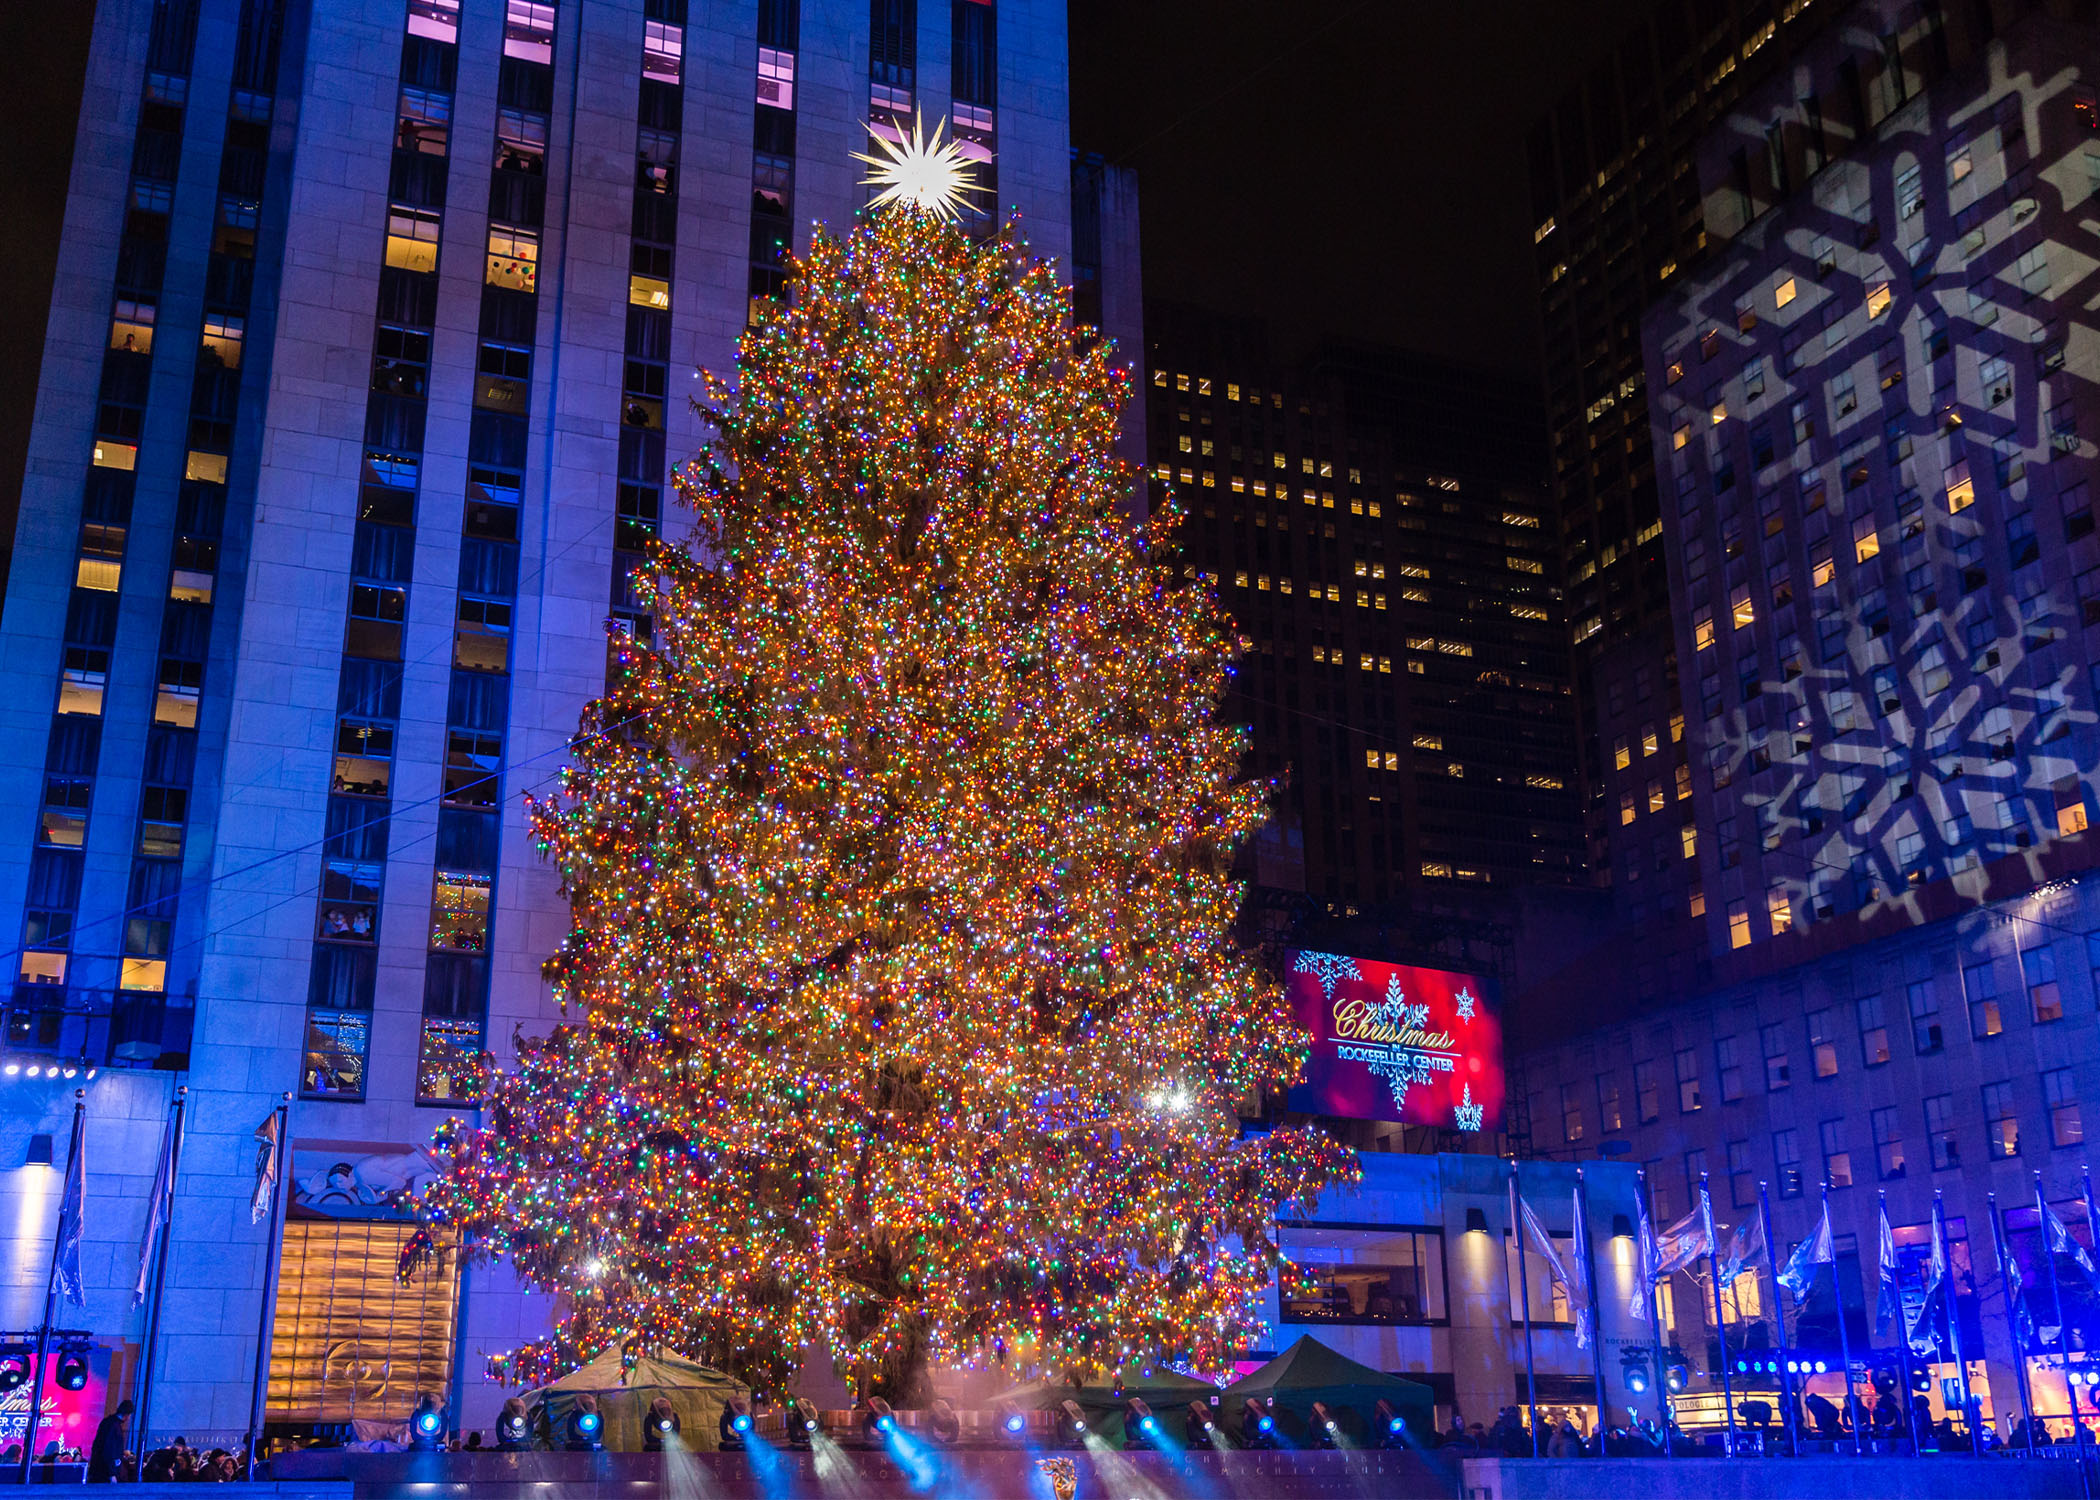 Nyc Christmas Tree 2020 Queens Rockefeller Center Christmas tree to return, possibly without crowds